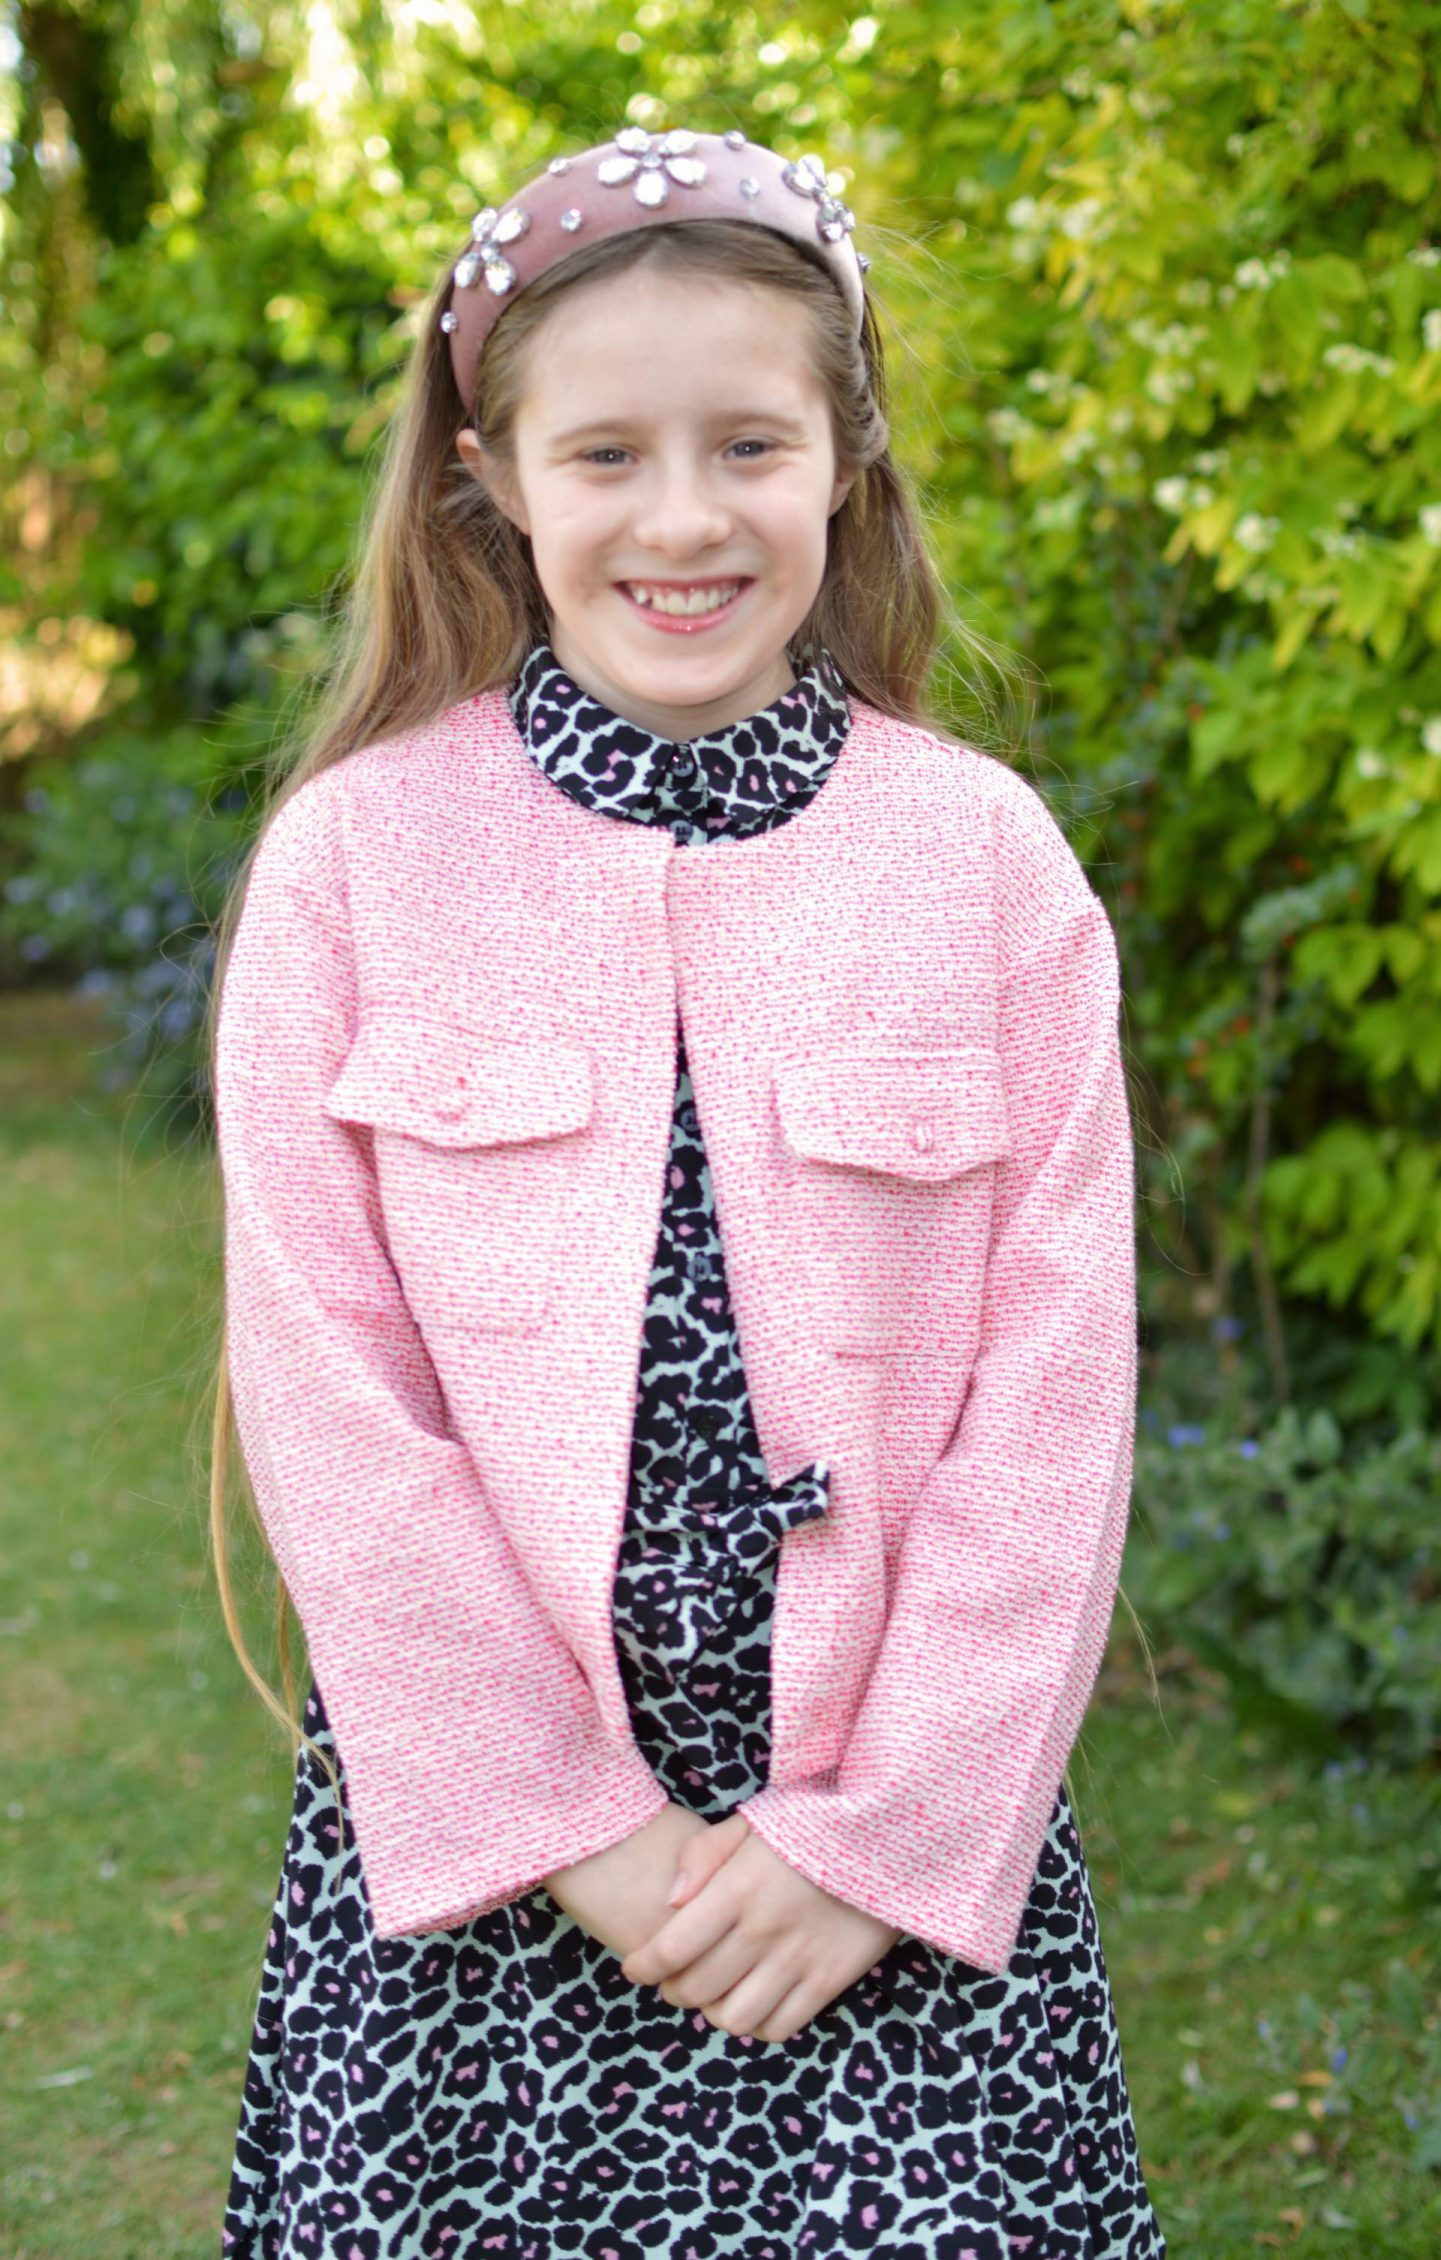 Mango girl's pink tweed jacket